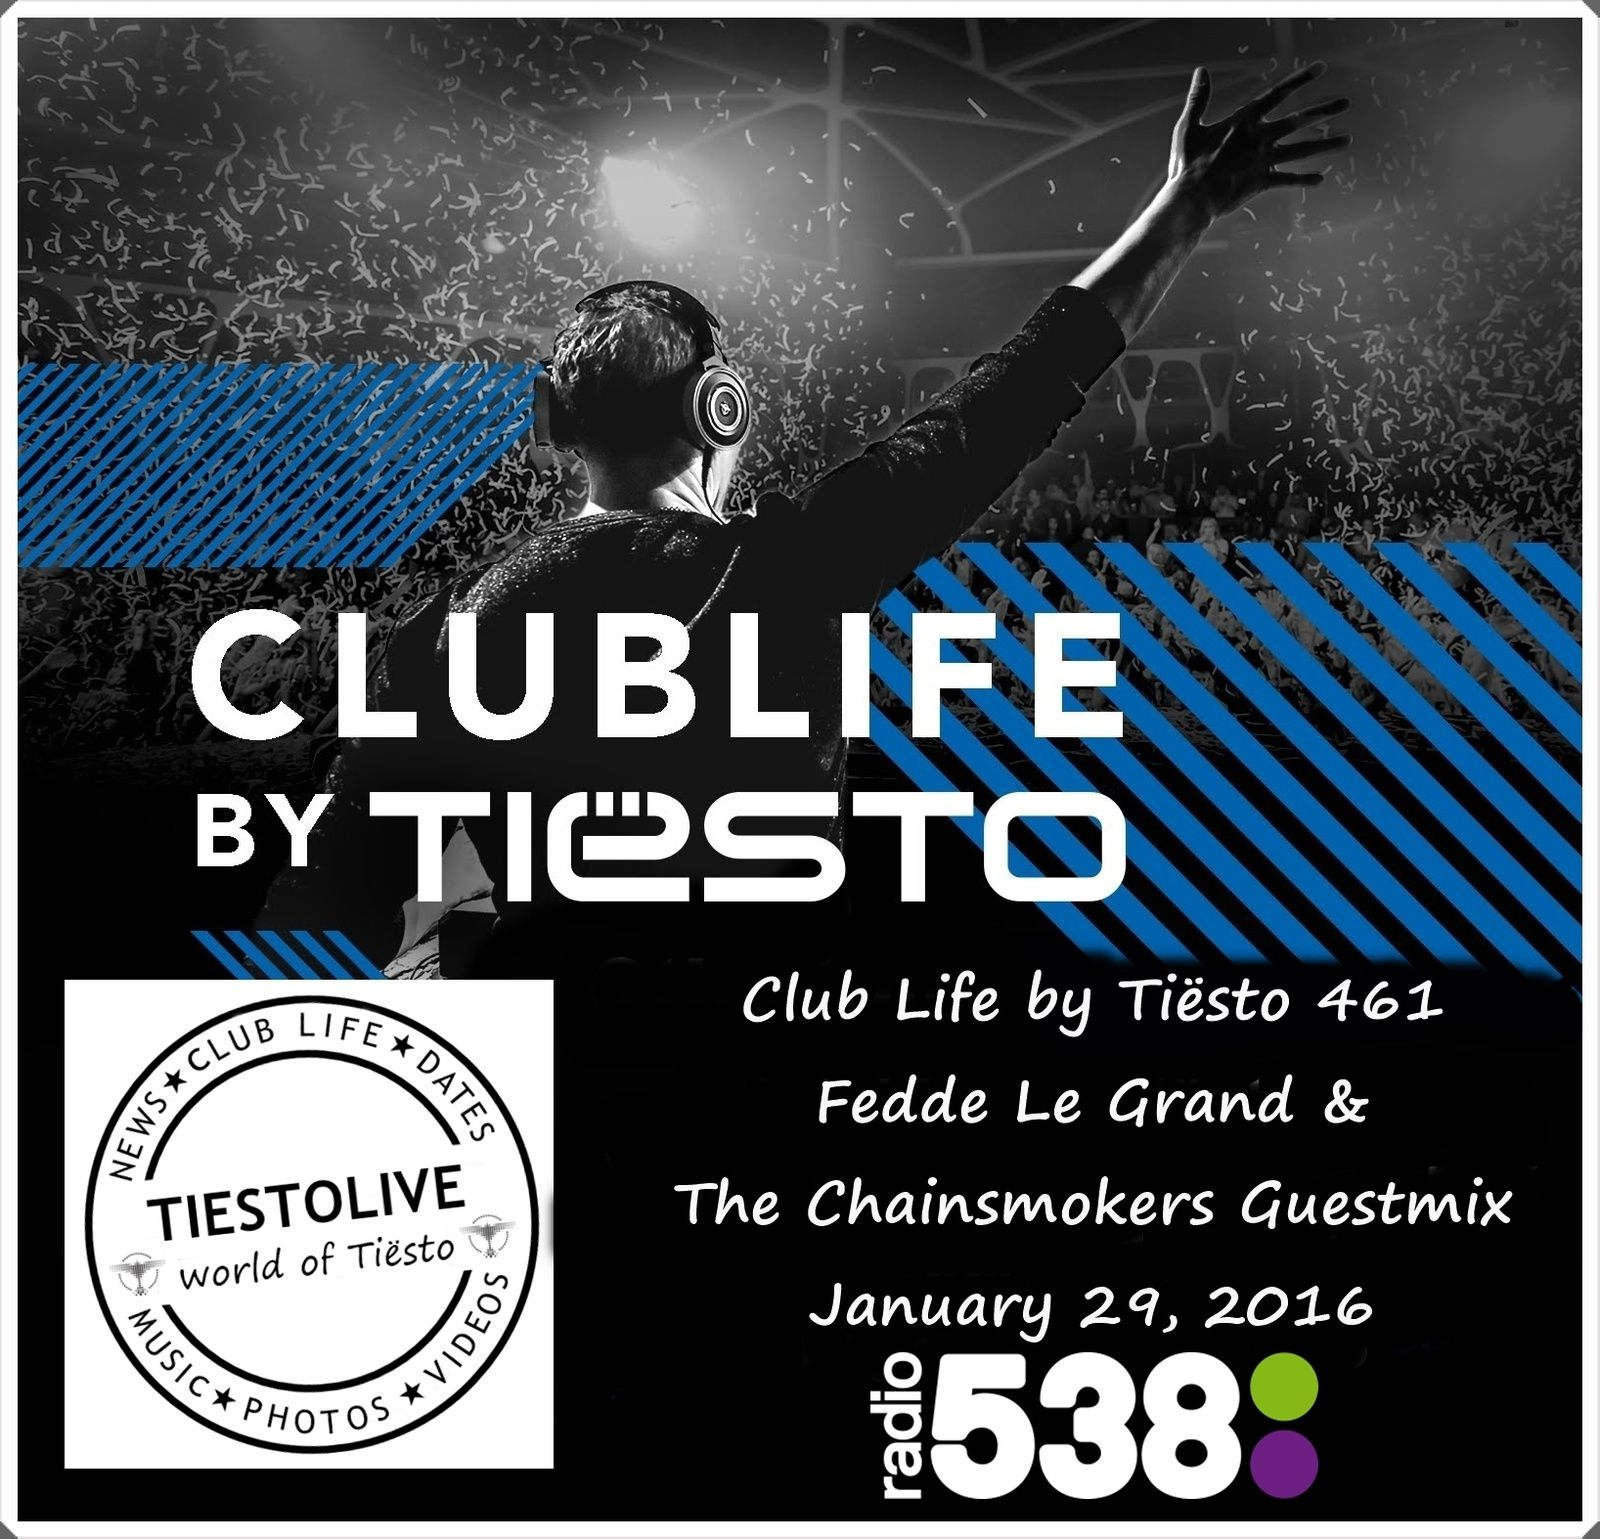 Club Life by Tiësto 461 - Fedde Le Grand &amp&#x3B; The Chainsmokers Guestmix - January 29, 2016